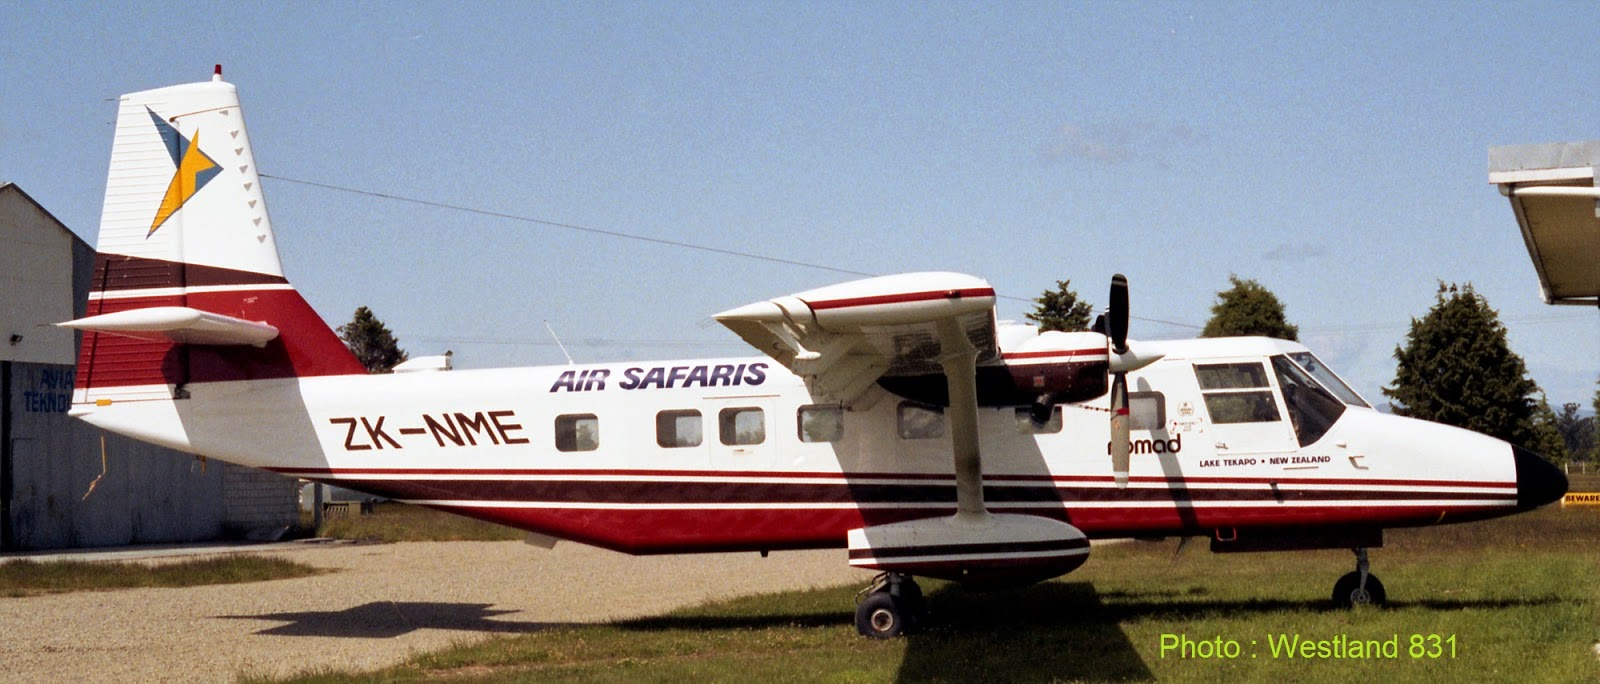 3rd level new zealand air safaris sole schedule for Nomad scheduler